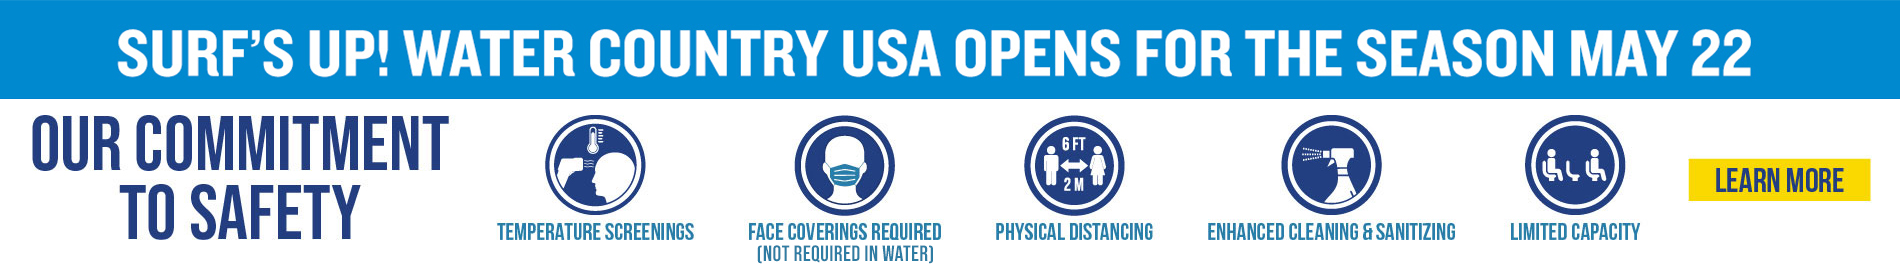 Surf's Up Water Country USA Opens for the Season May 22. Learn more about the enhanced health & safety guidelines coming to the Water Park.